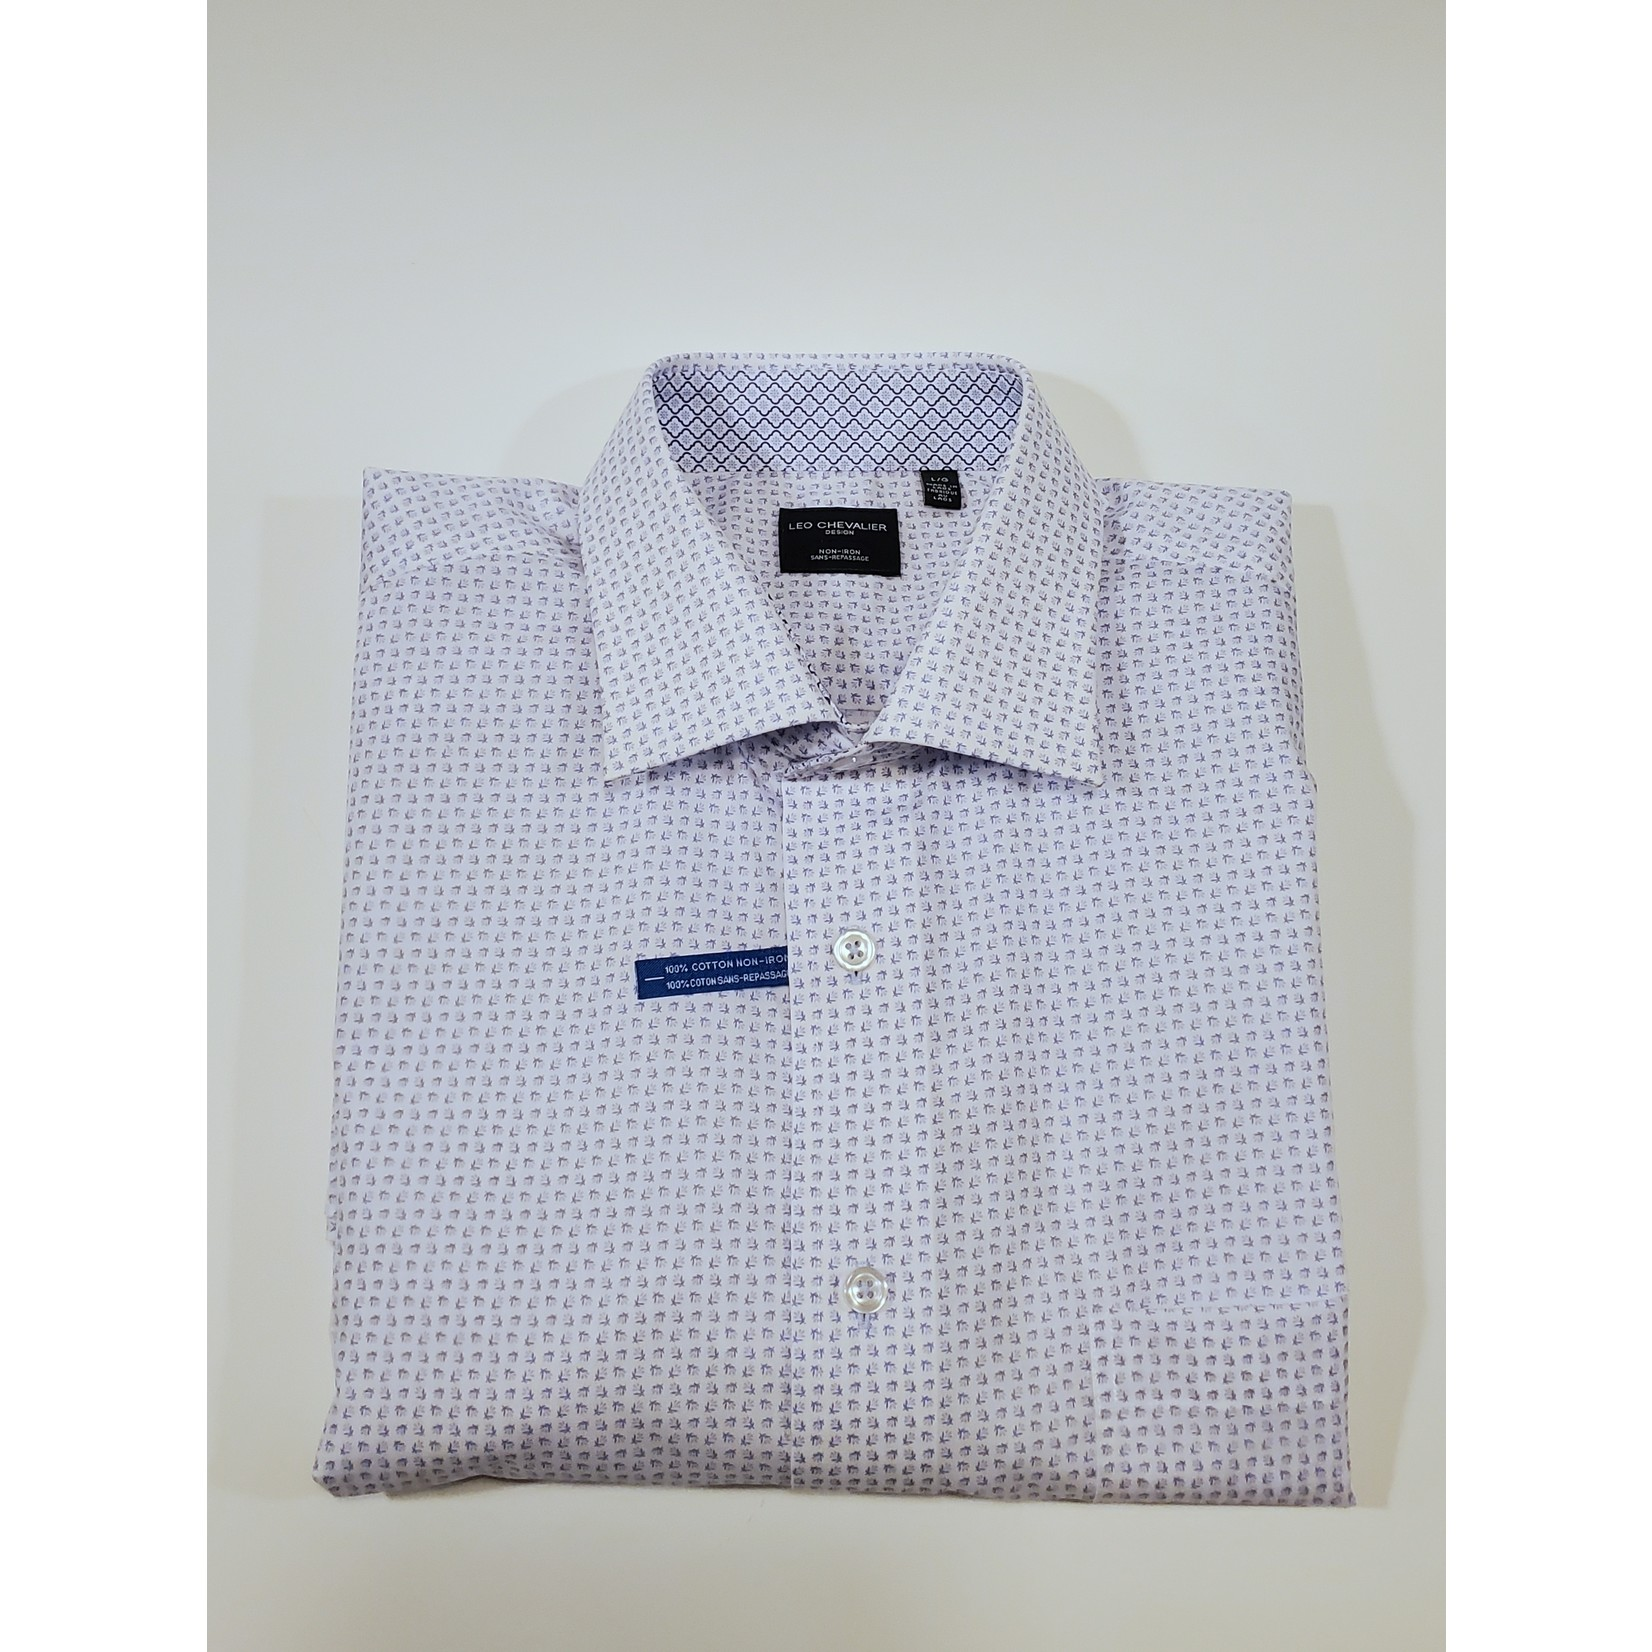 Leo Chevalier Leo Chevalier 526357 Short-Sleeve Shirt